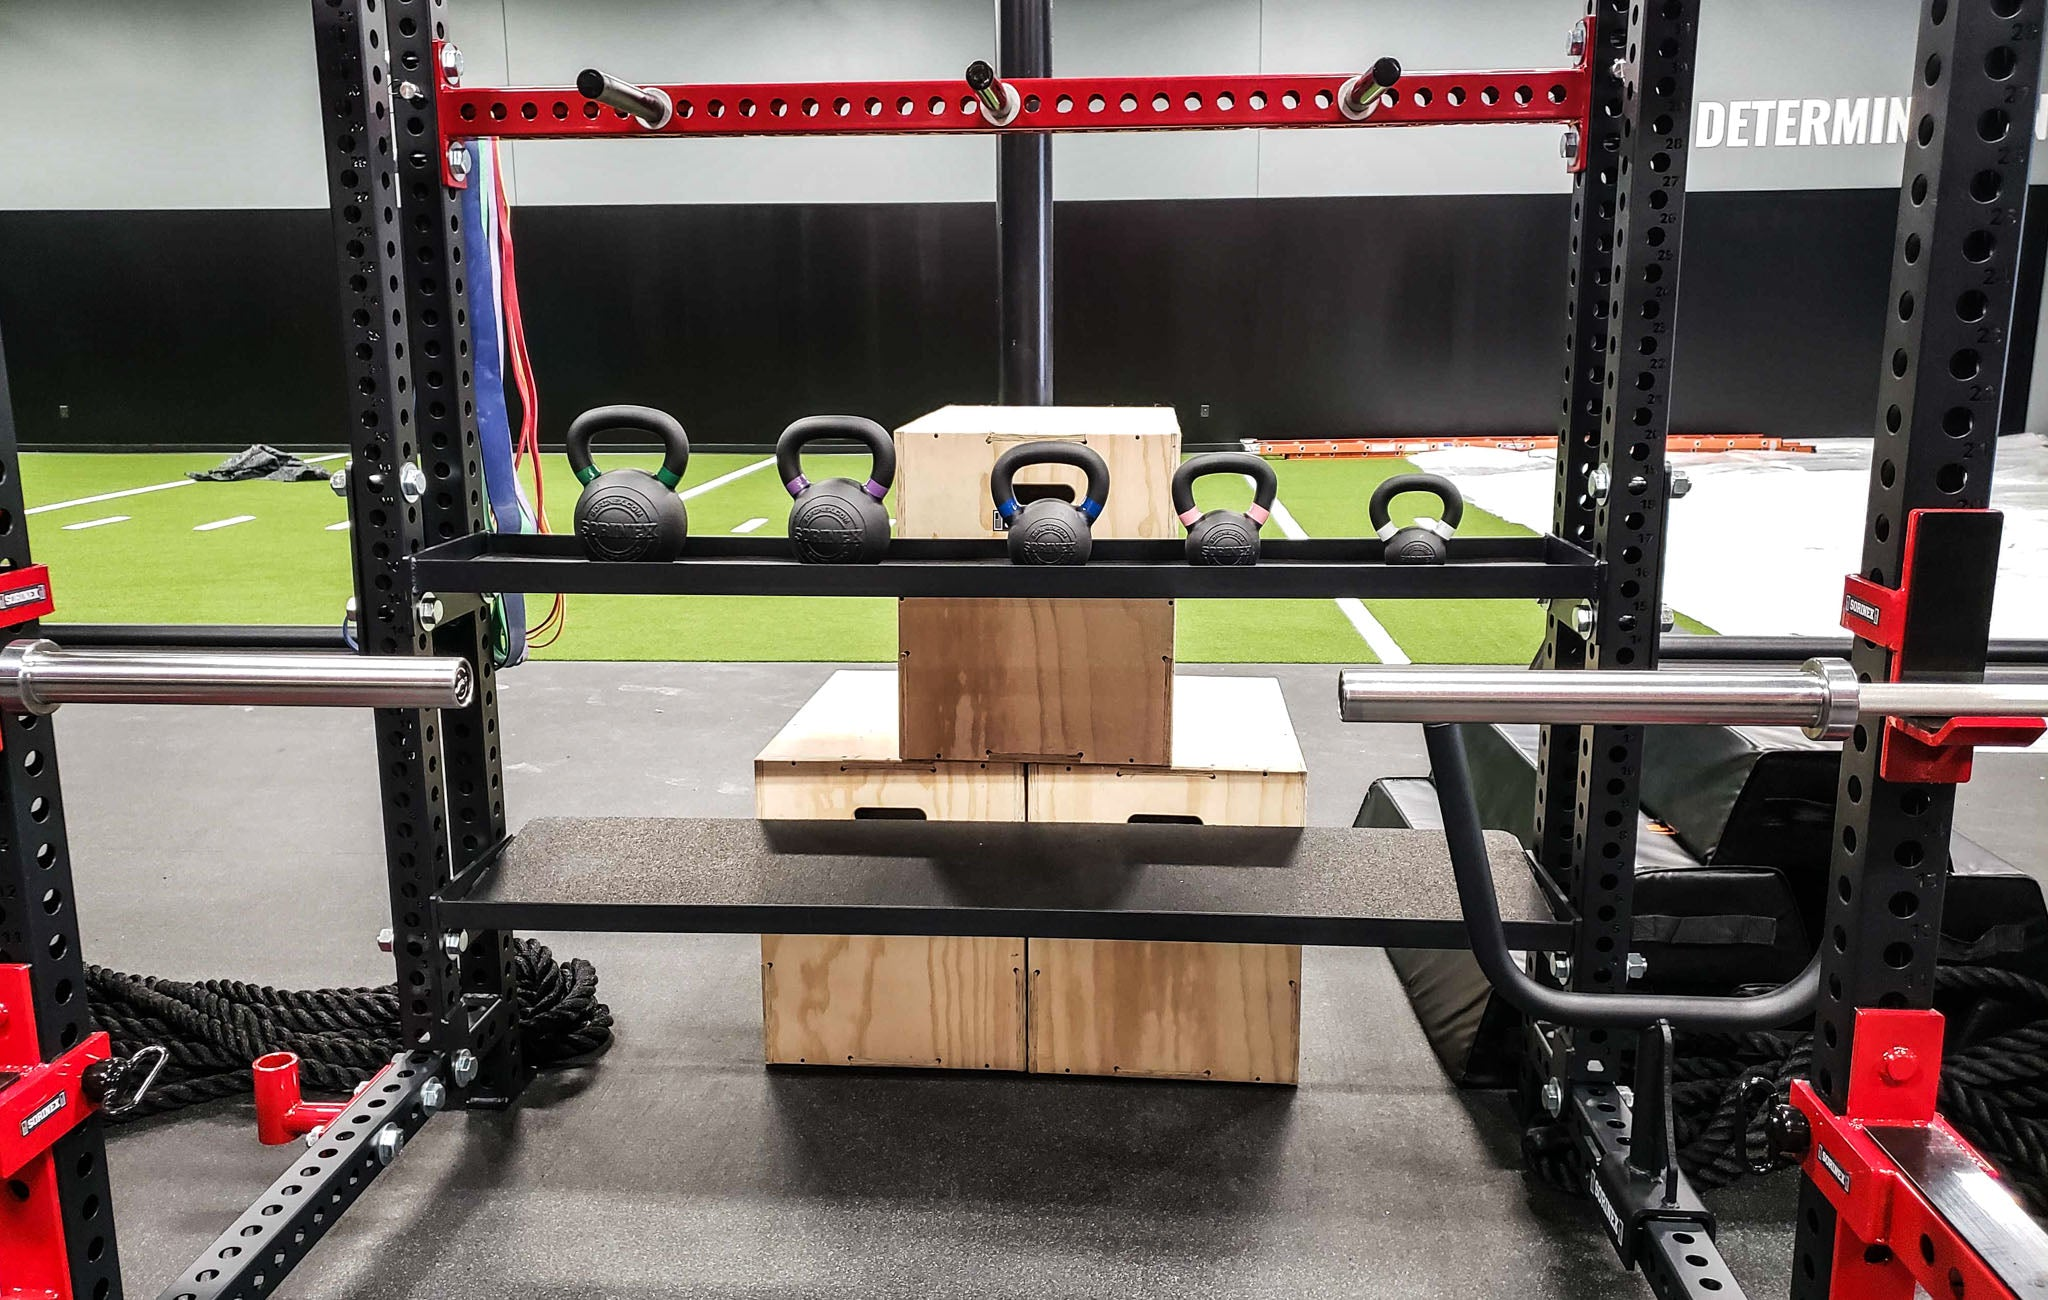 Sorinex D1 weight rooms